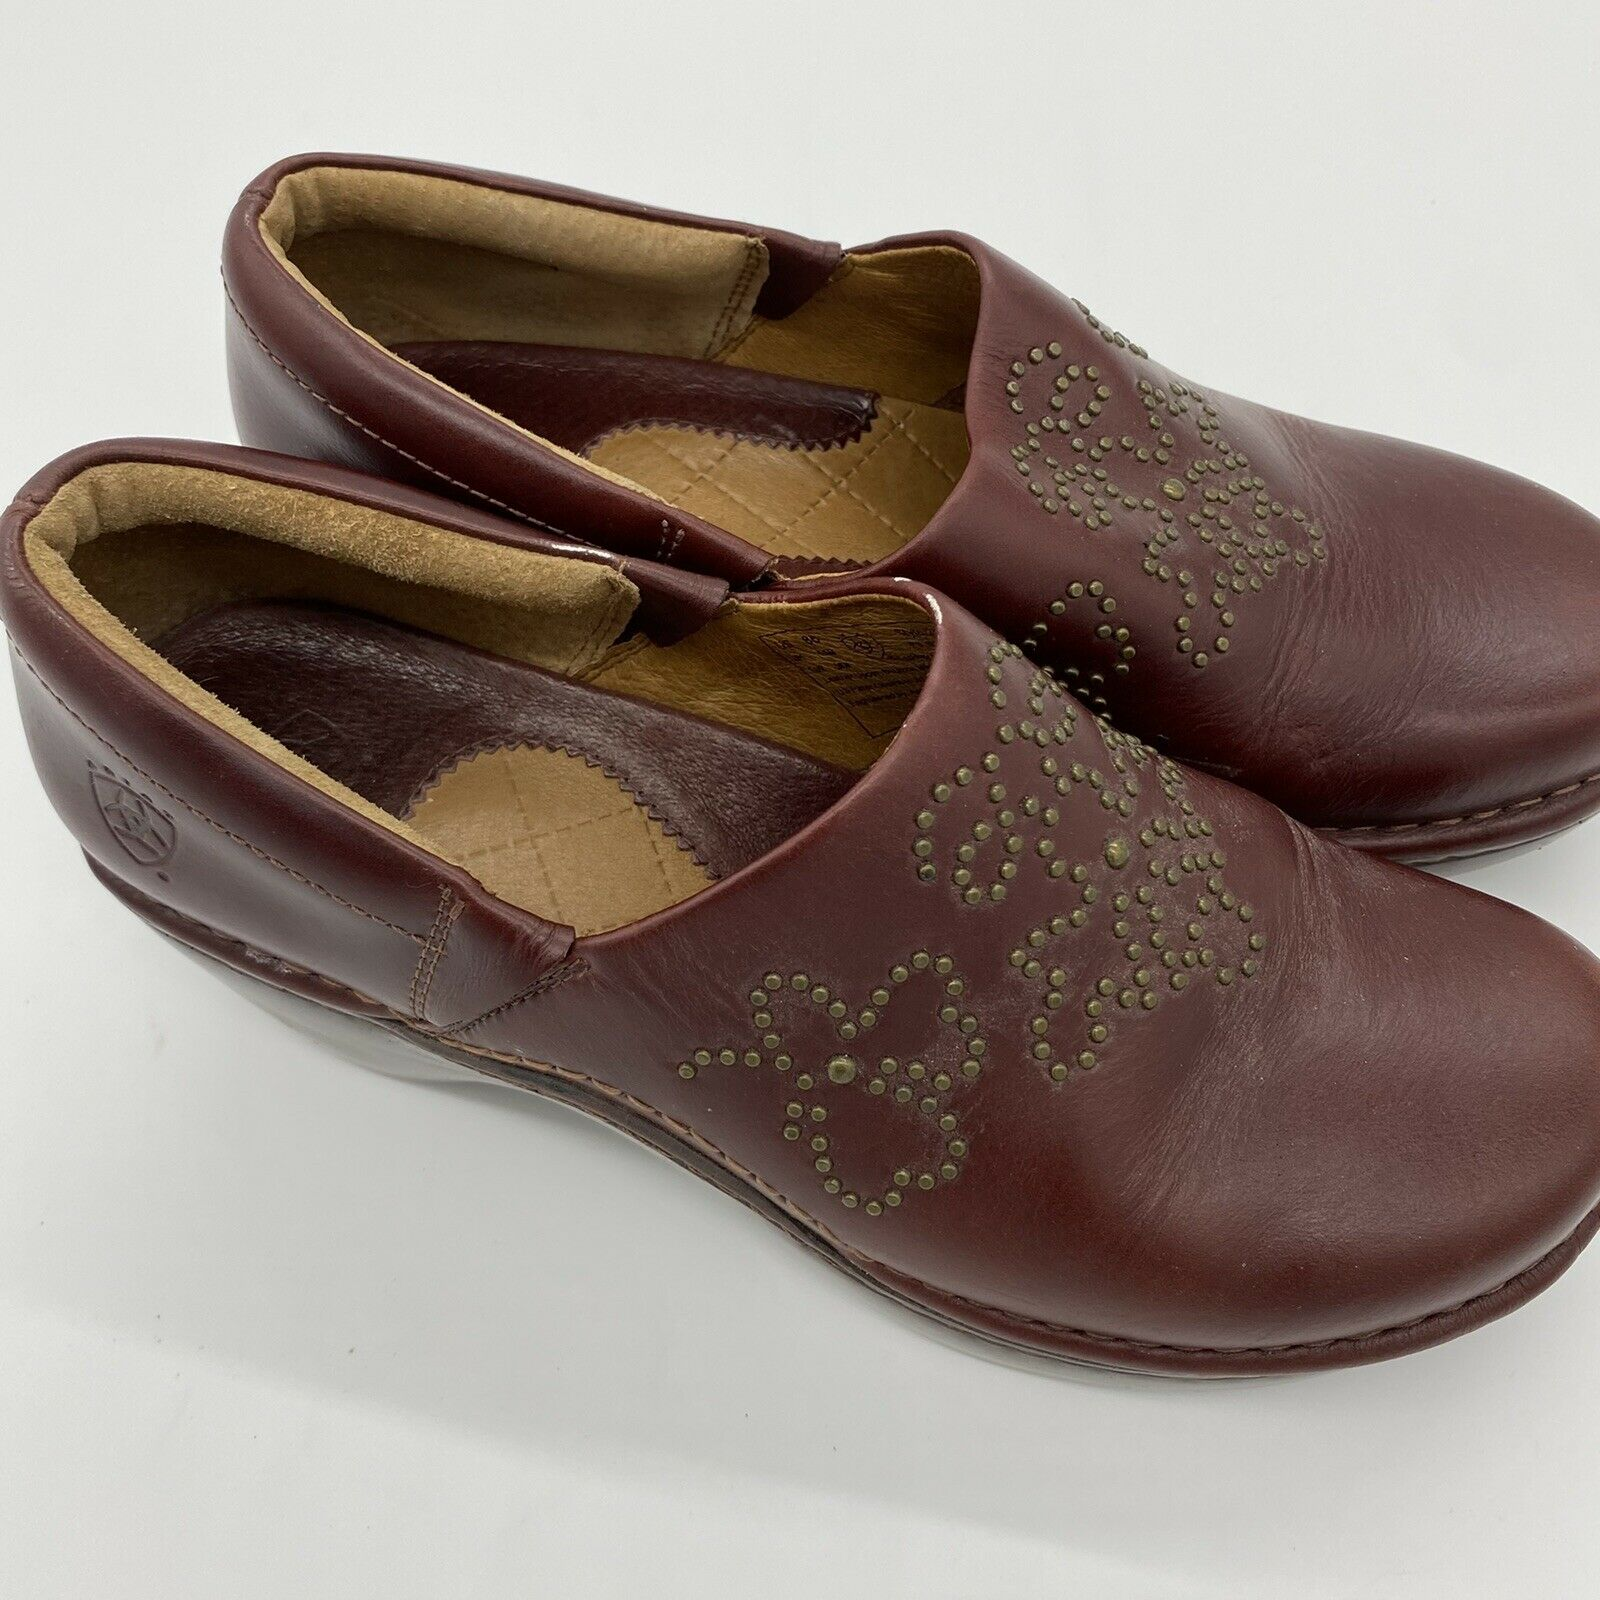 Ariat Strathmore Leather Brass Studded Nurse Clogs Loafers 21262 Women's 8B